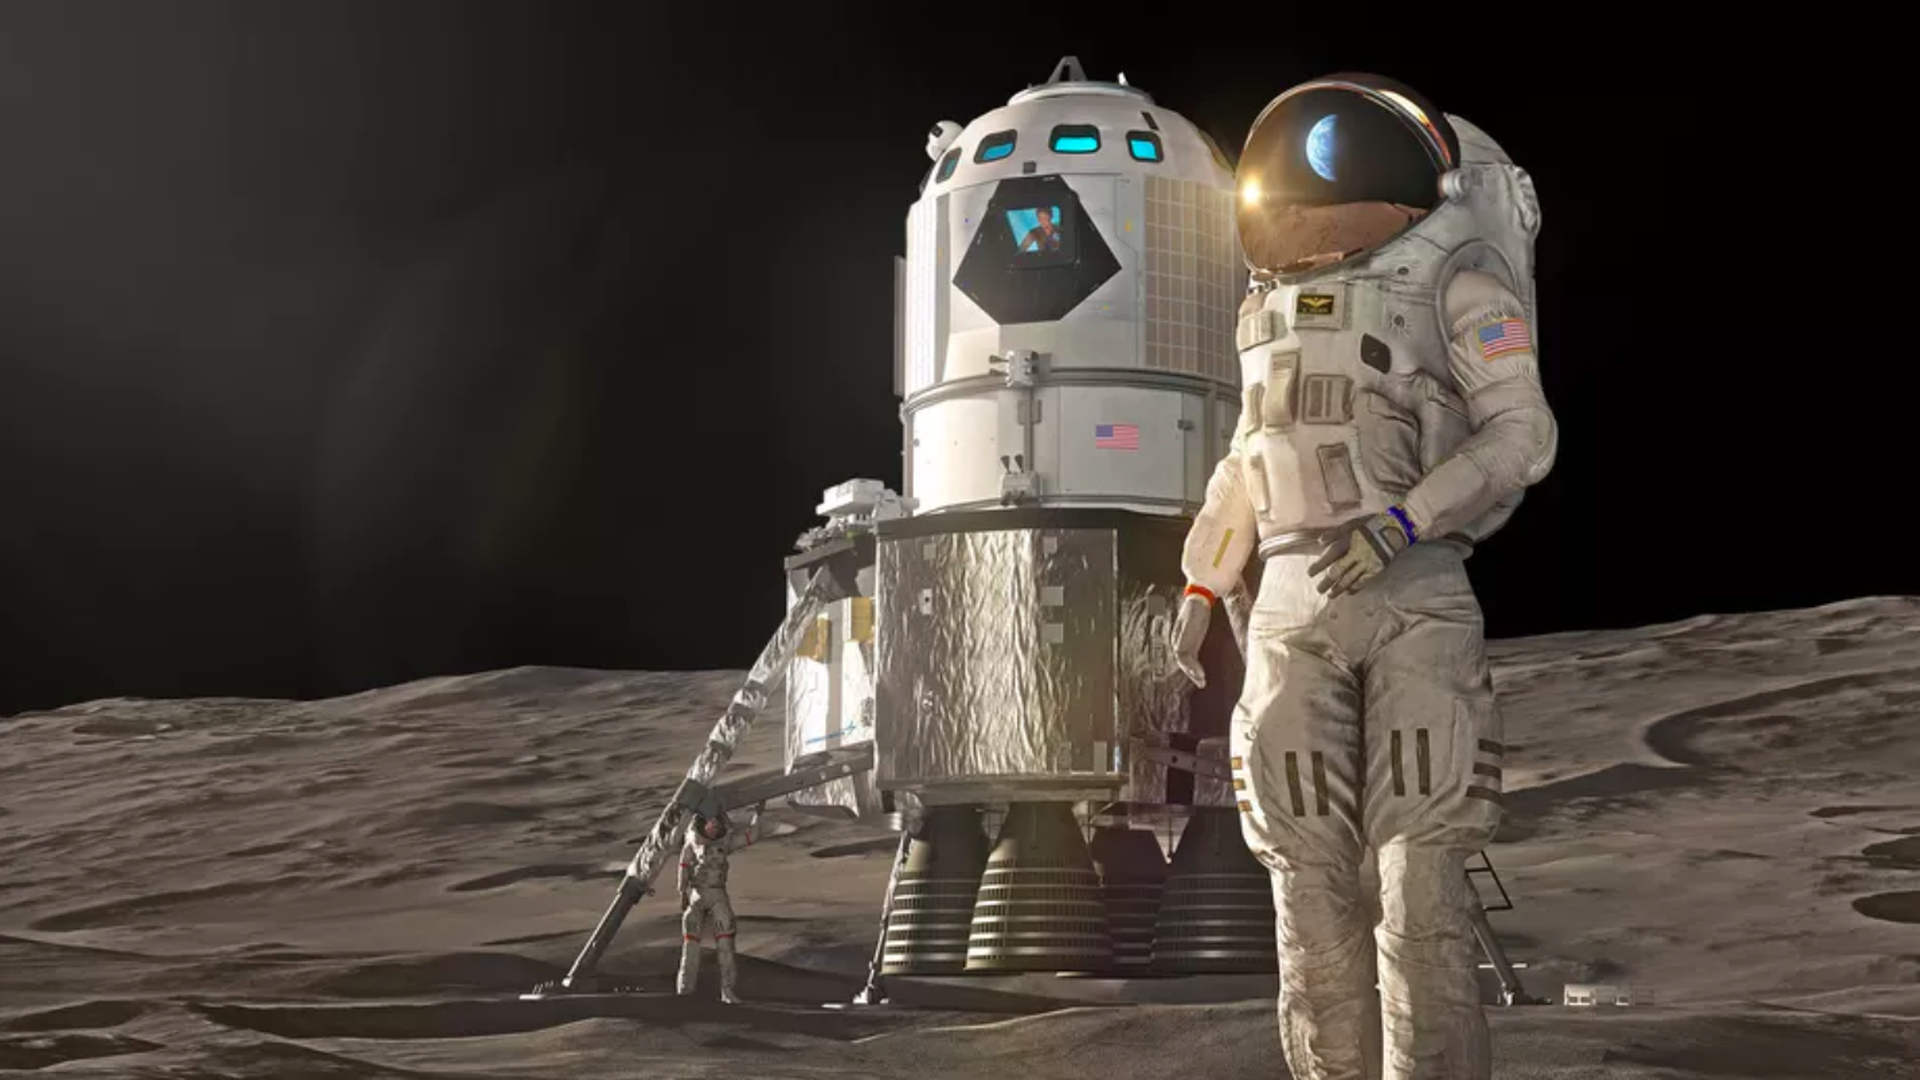 In this illustration, an astronaut stands on the moon and watches the Earth, which is reflected in their helmet.